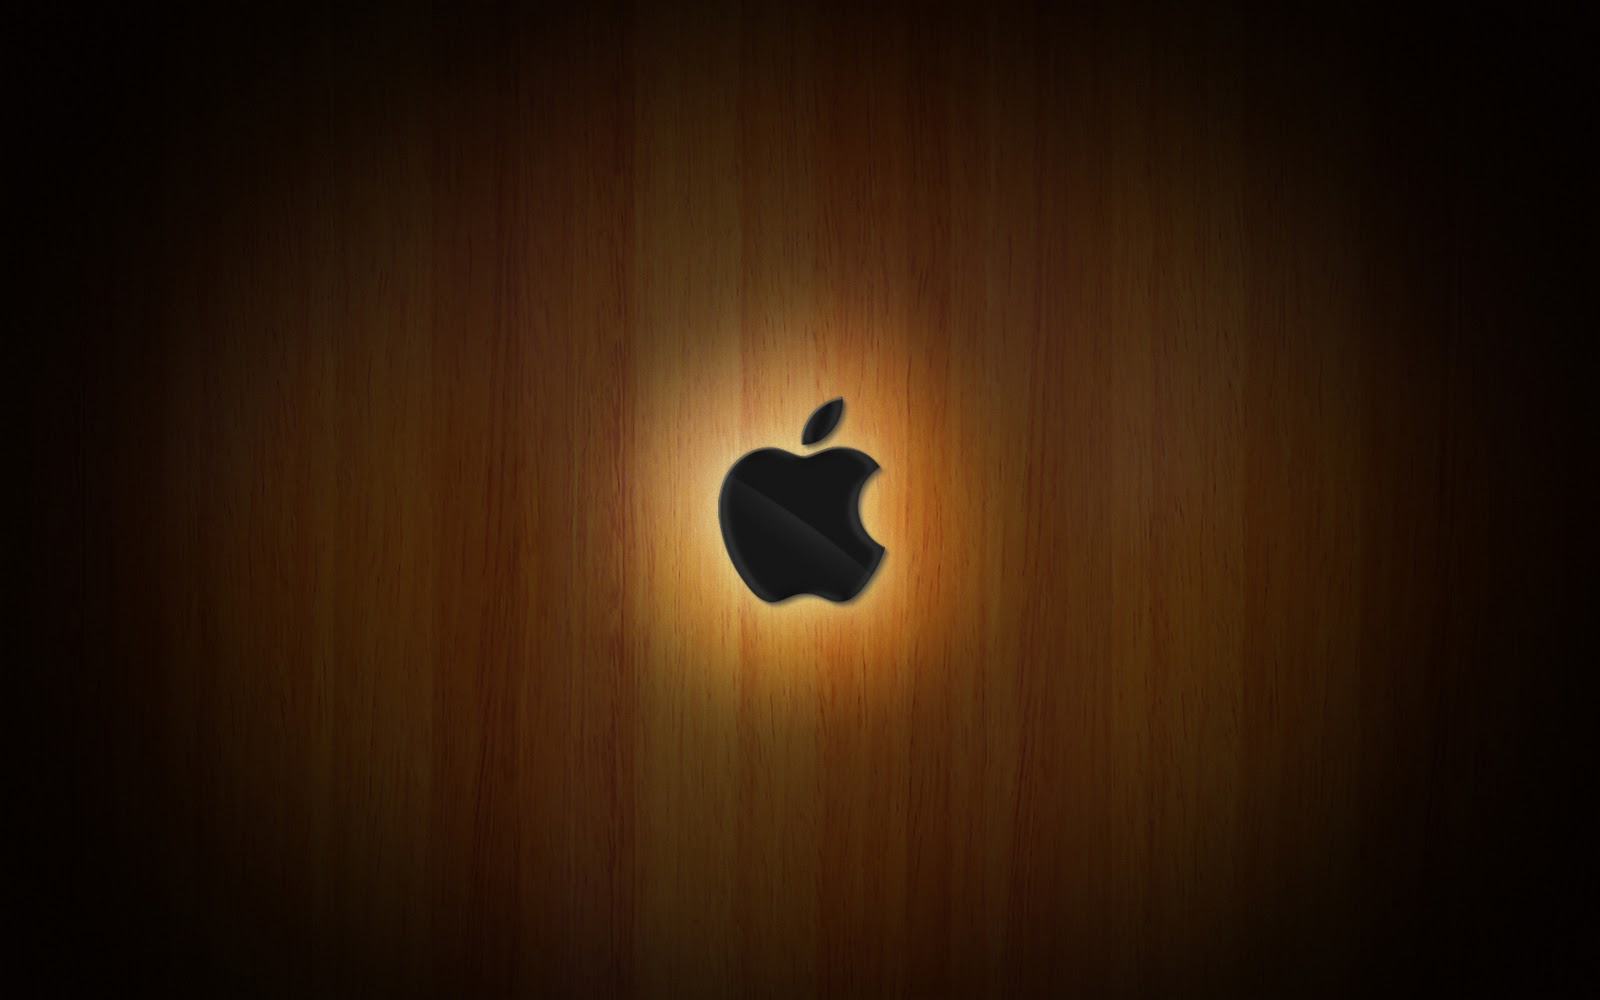 apple desktop backgrounds - wallpapersafari